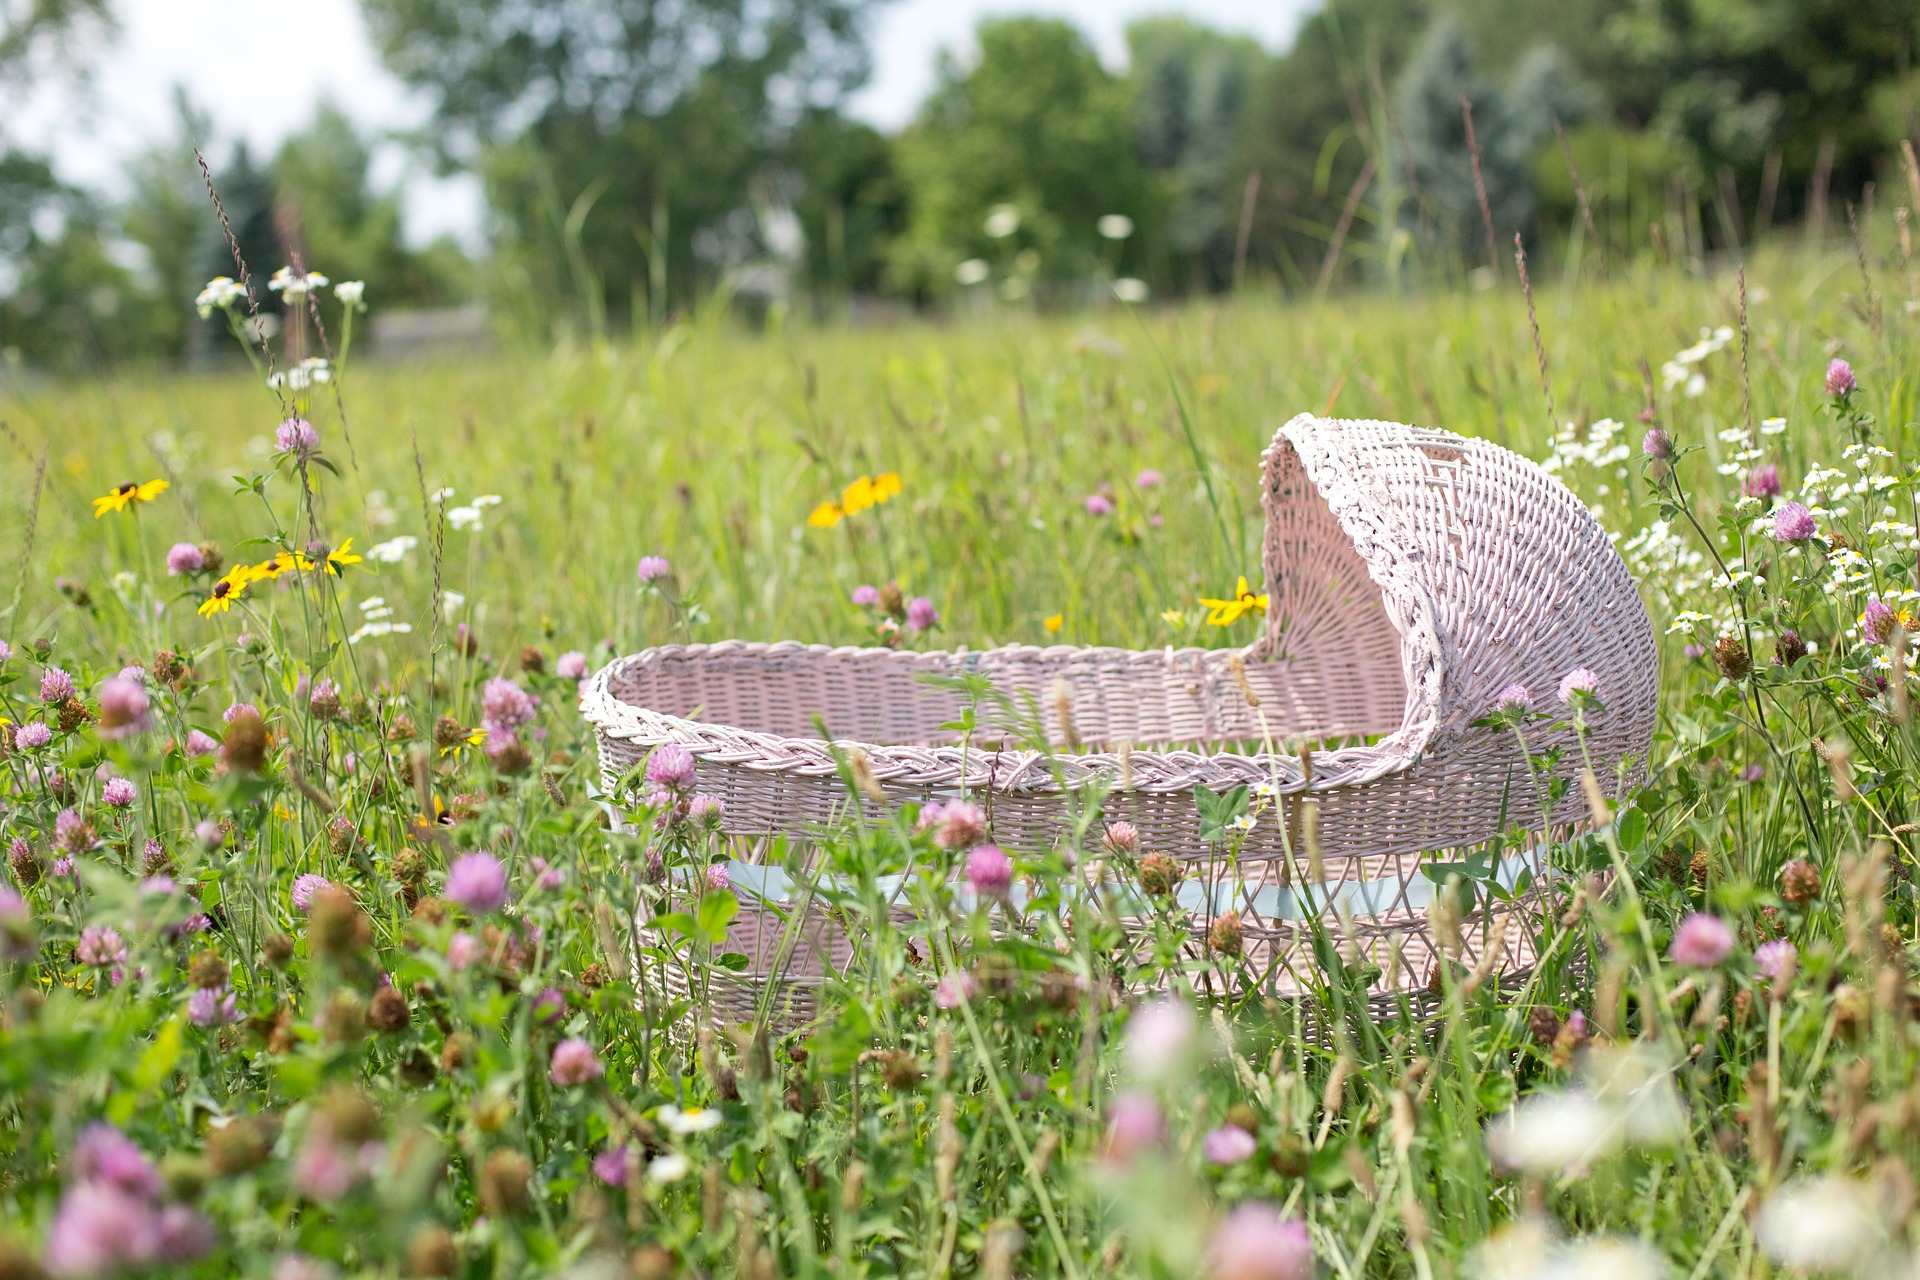 Baby Bassinet in the Garden, Garden, Object, Wild, Wooden, HQ Photo